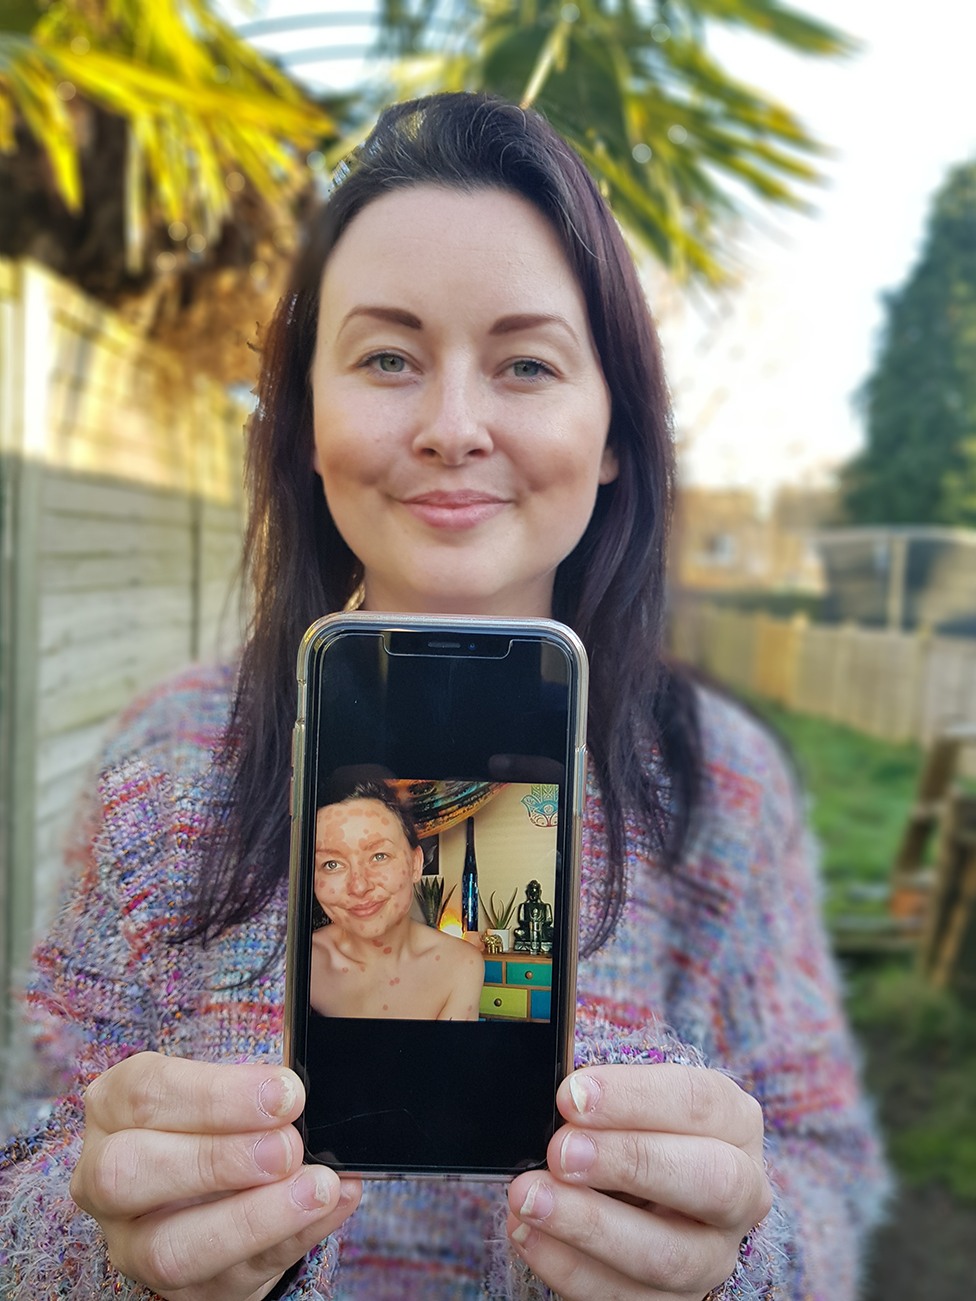 Aimee shows a picture of her psoriasis